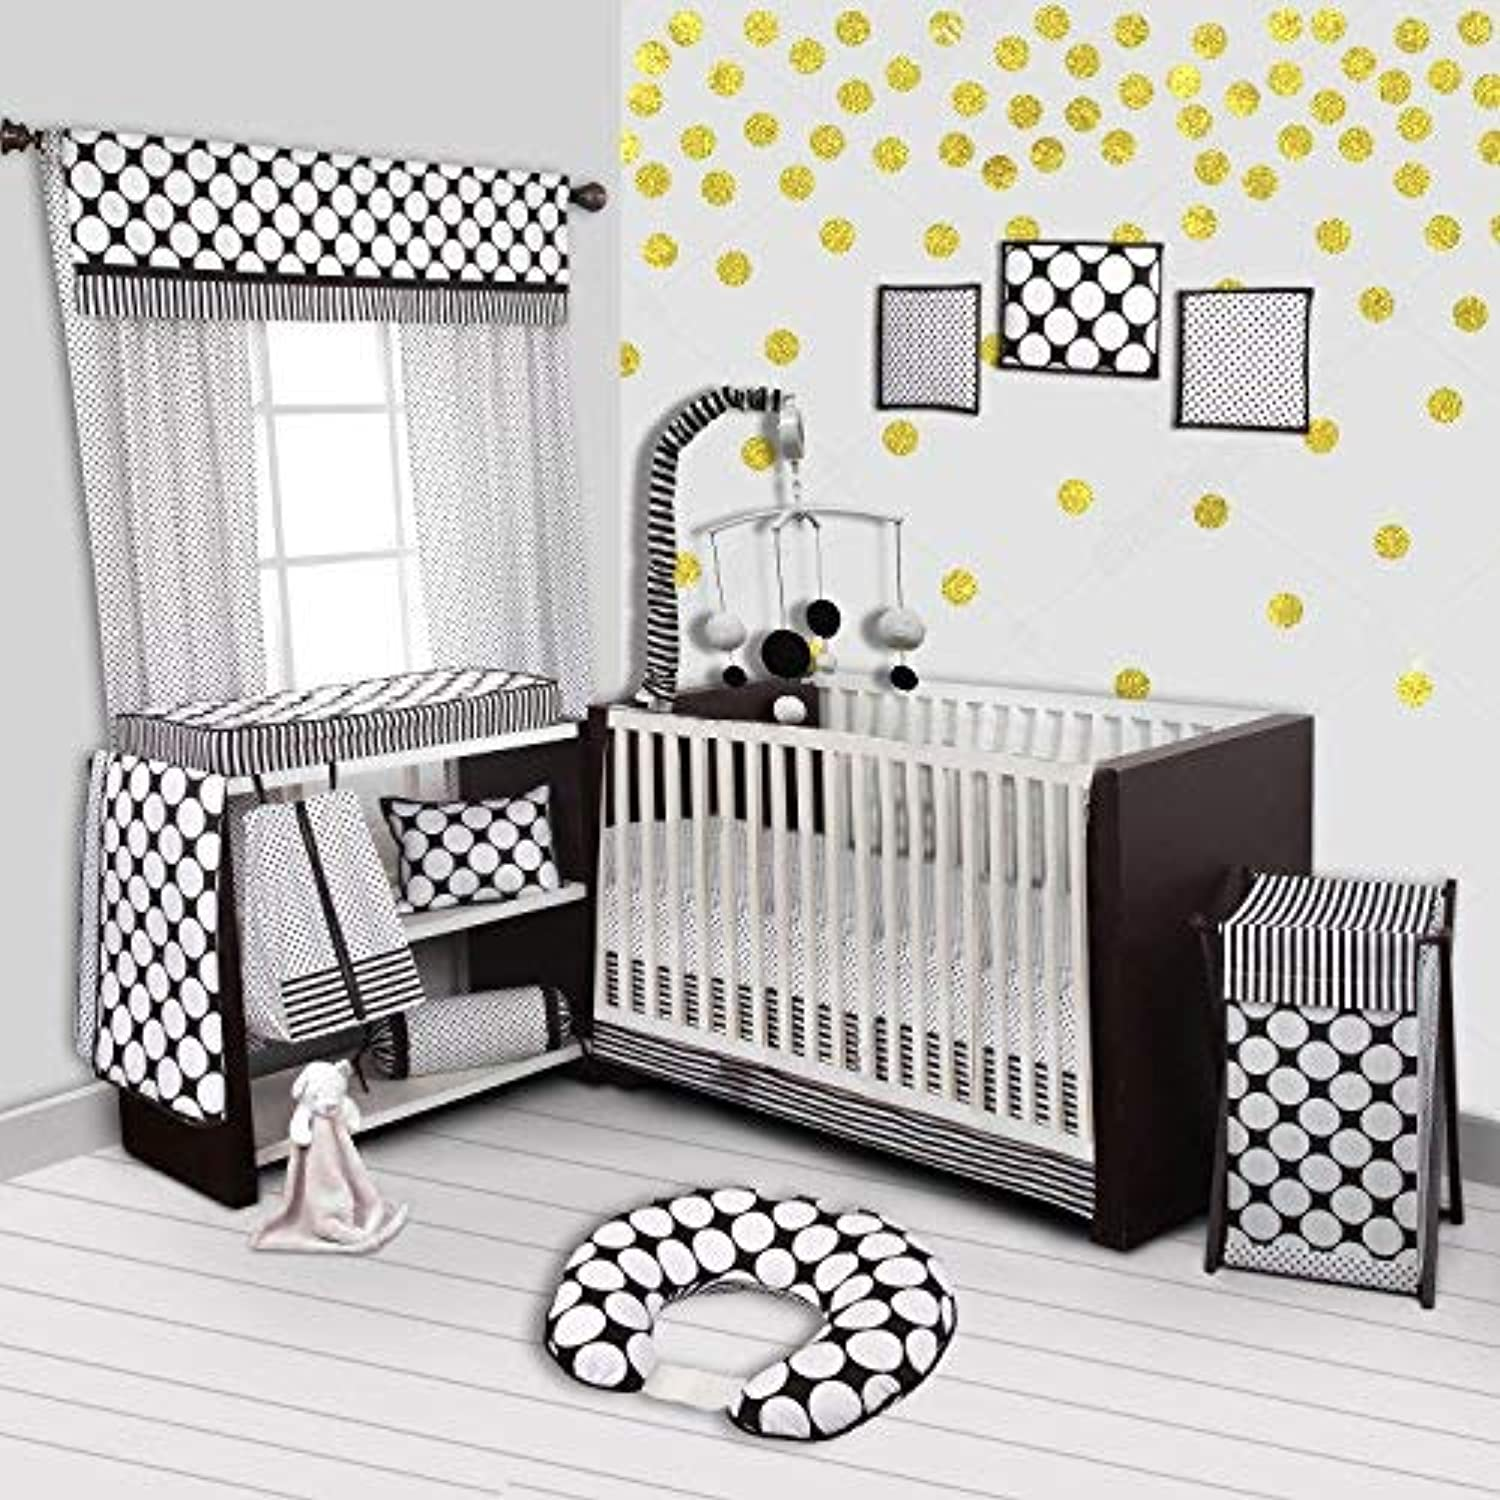 Bacati Stripes/Dots 10-Piece Nursery-In-A-Bag Crib Bedding Set with Long Rail Guard Black/White [並行輸入品]